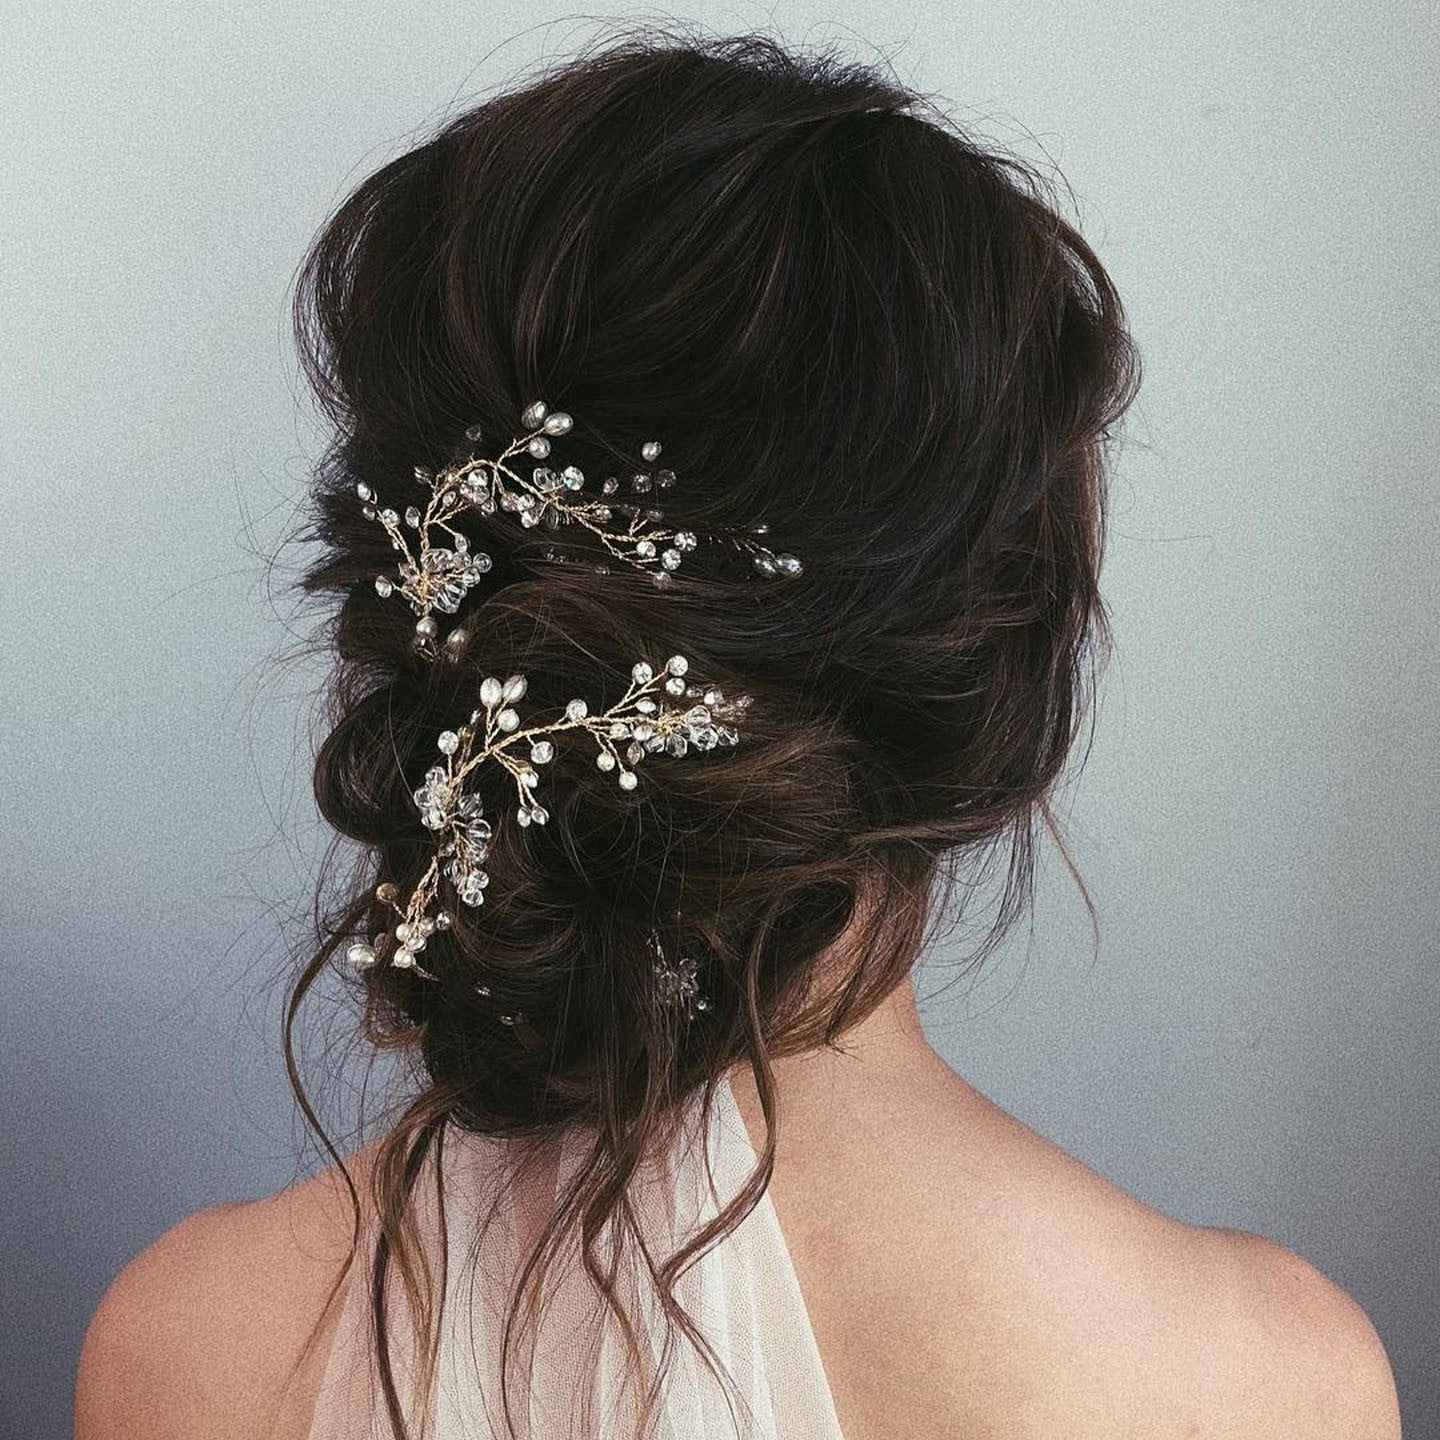 Messy bun wedding hair popsugar beauty photo 14 junglespirit Image collections